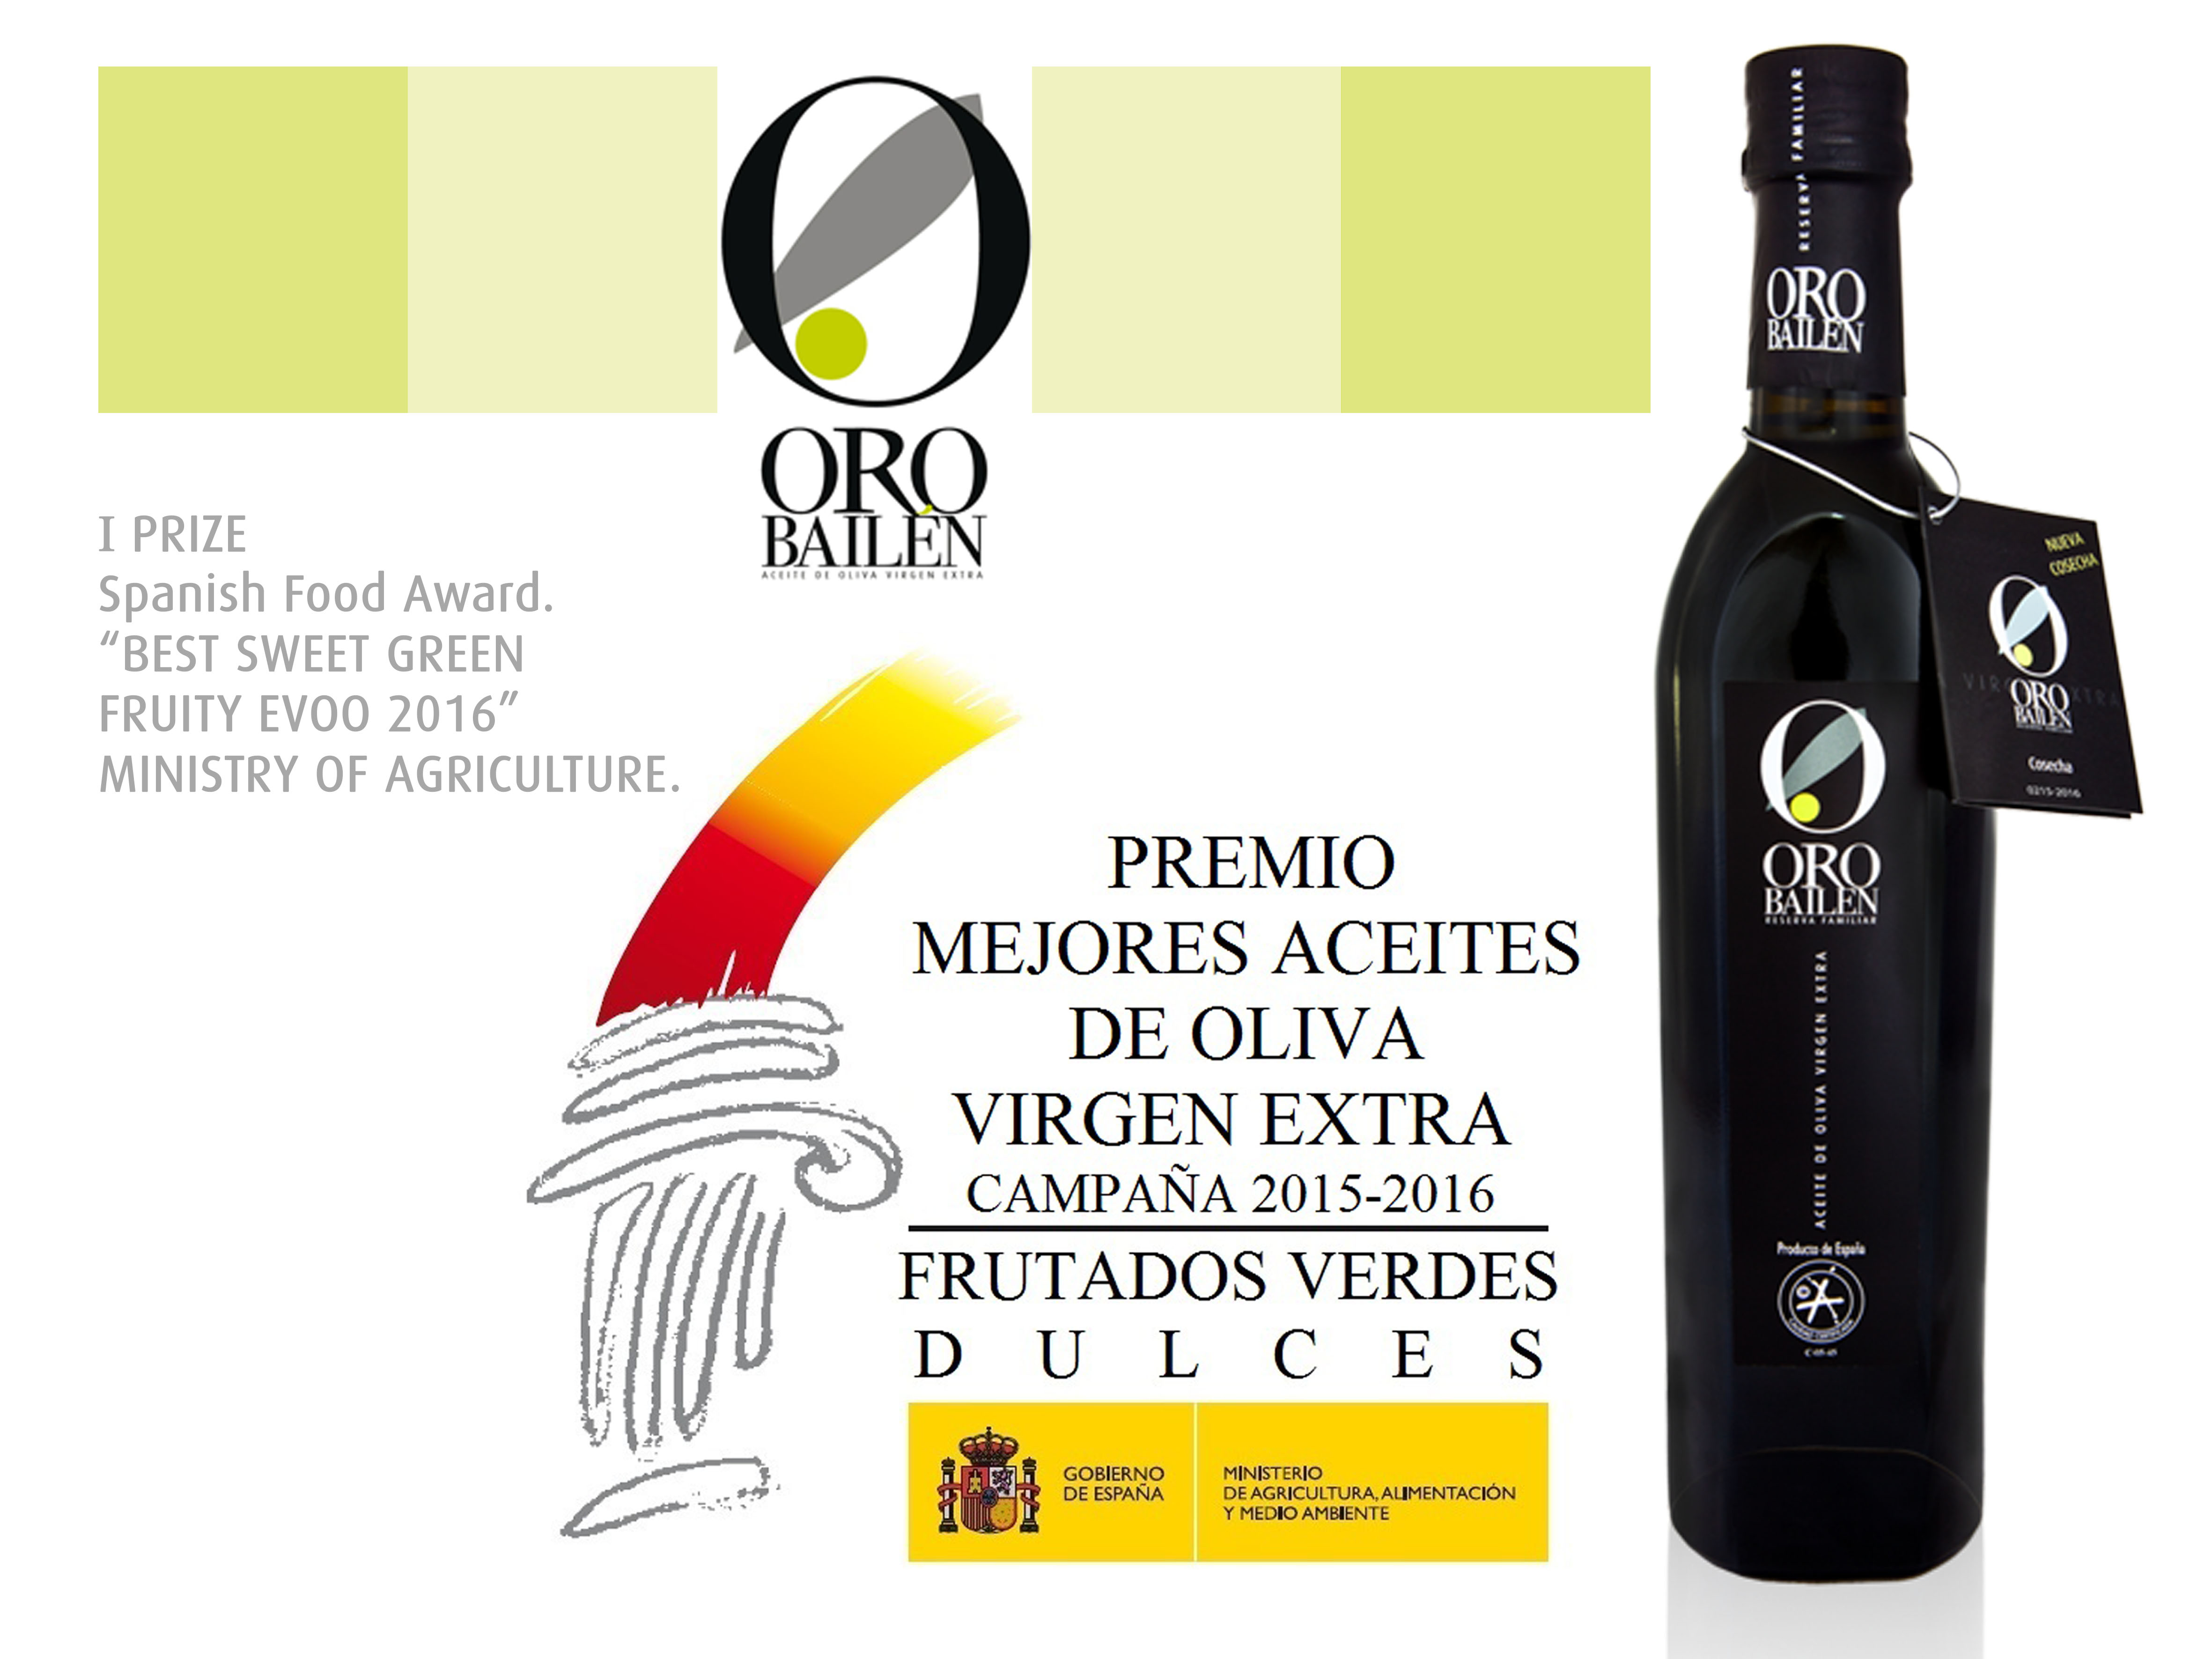 Ministry Of Agriculture Prize To The Best Evoo 2015 2016 Oro Bailén Aceite De Oliva Virgen Extra